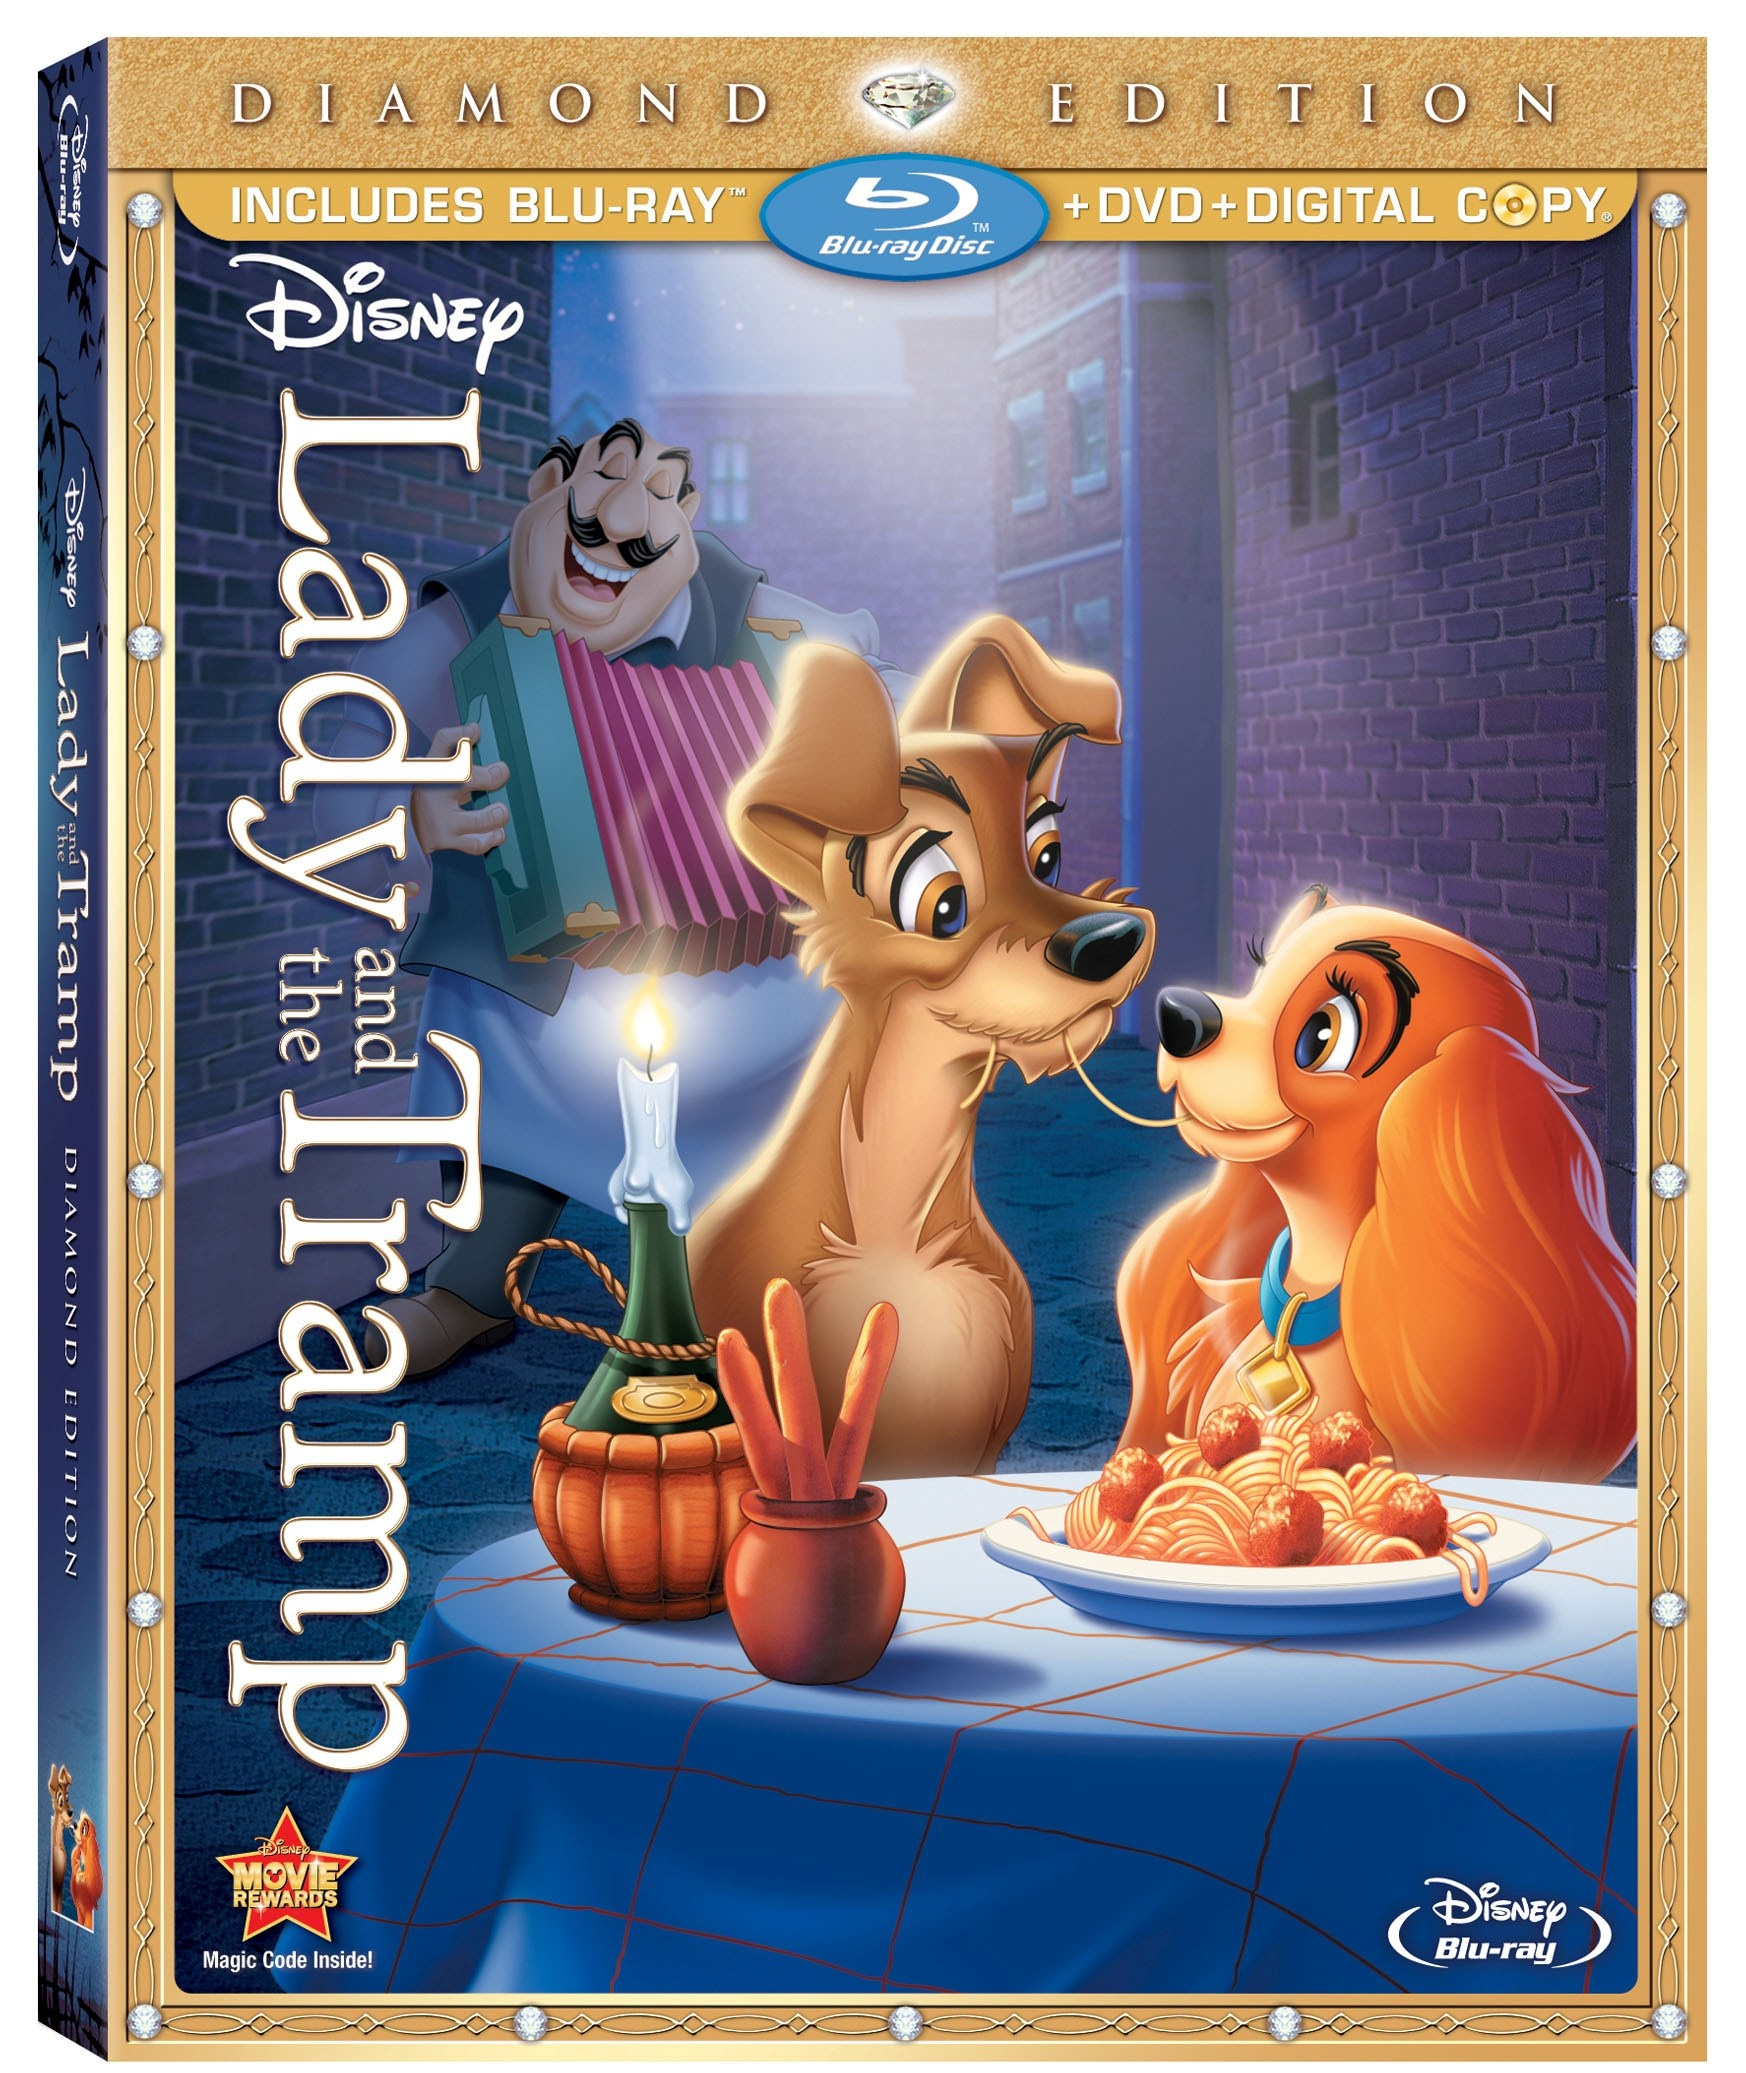 REVIEW: Disney's Classic Lady and The Tramp Returns to DVD and Blu-Ray